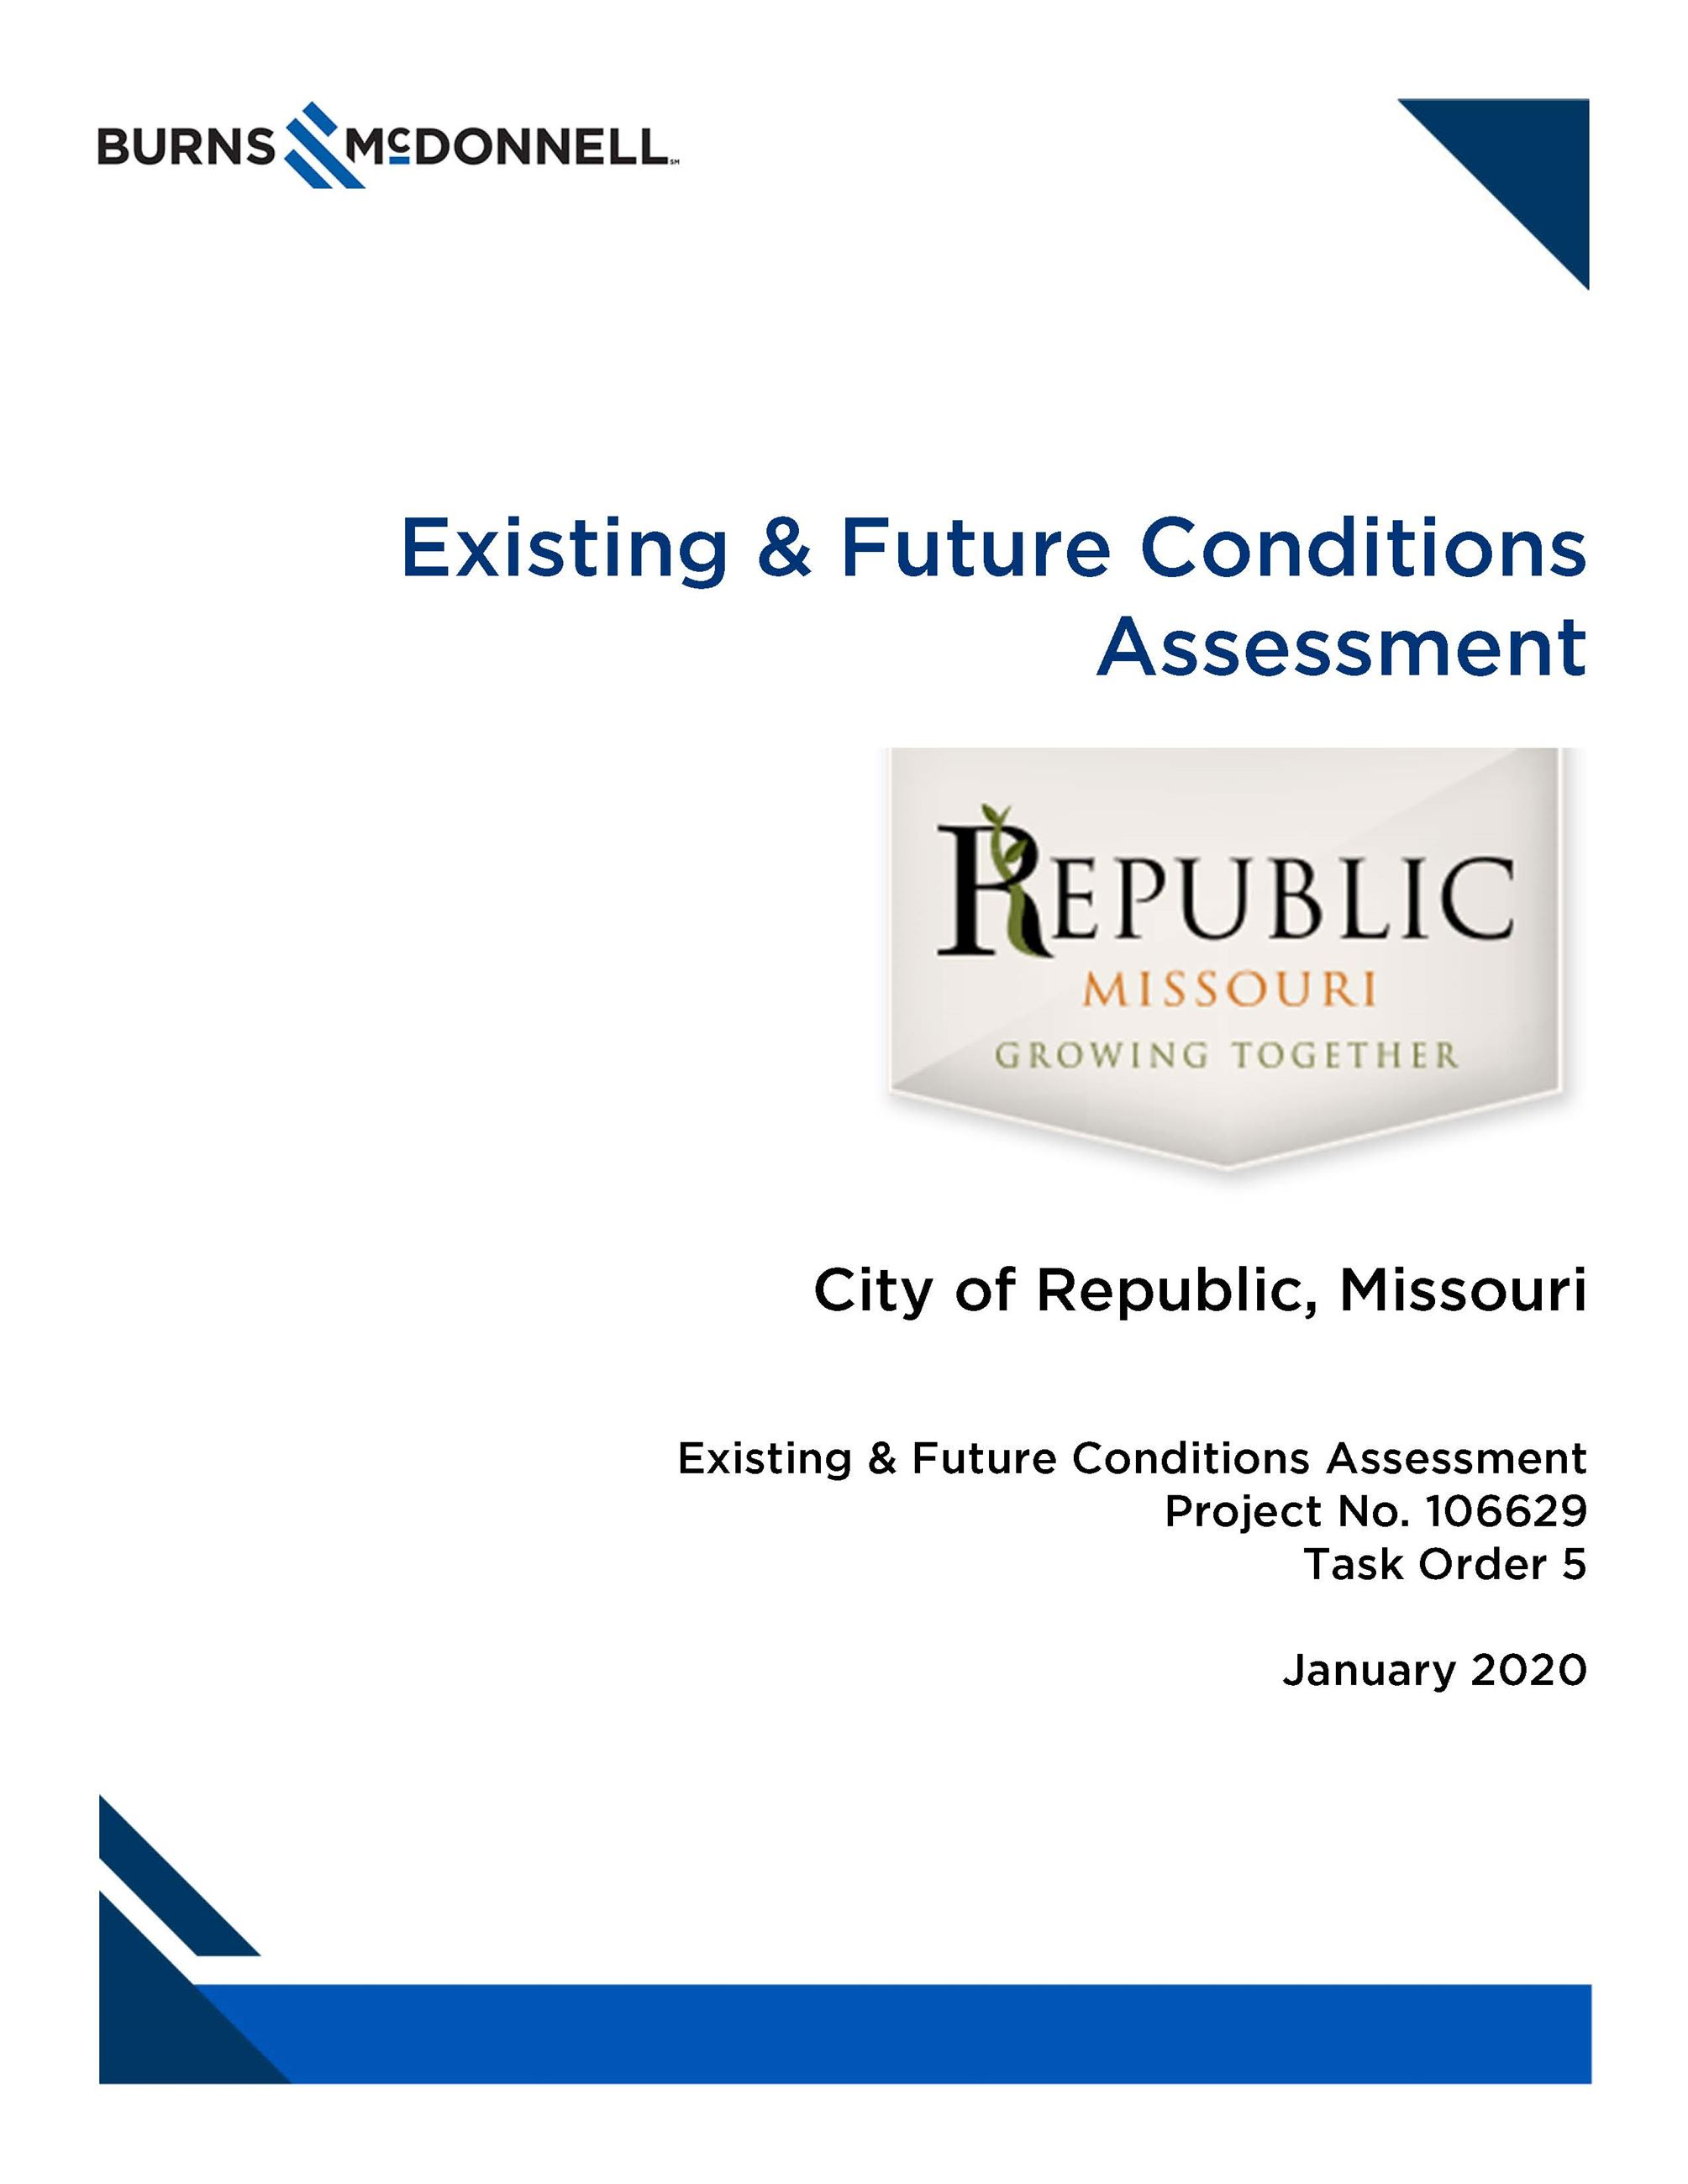 Republic Existing and Future Conditions Opens in new window